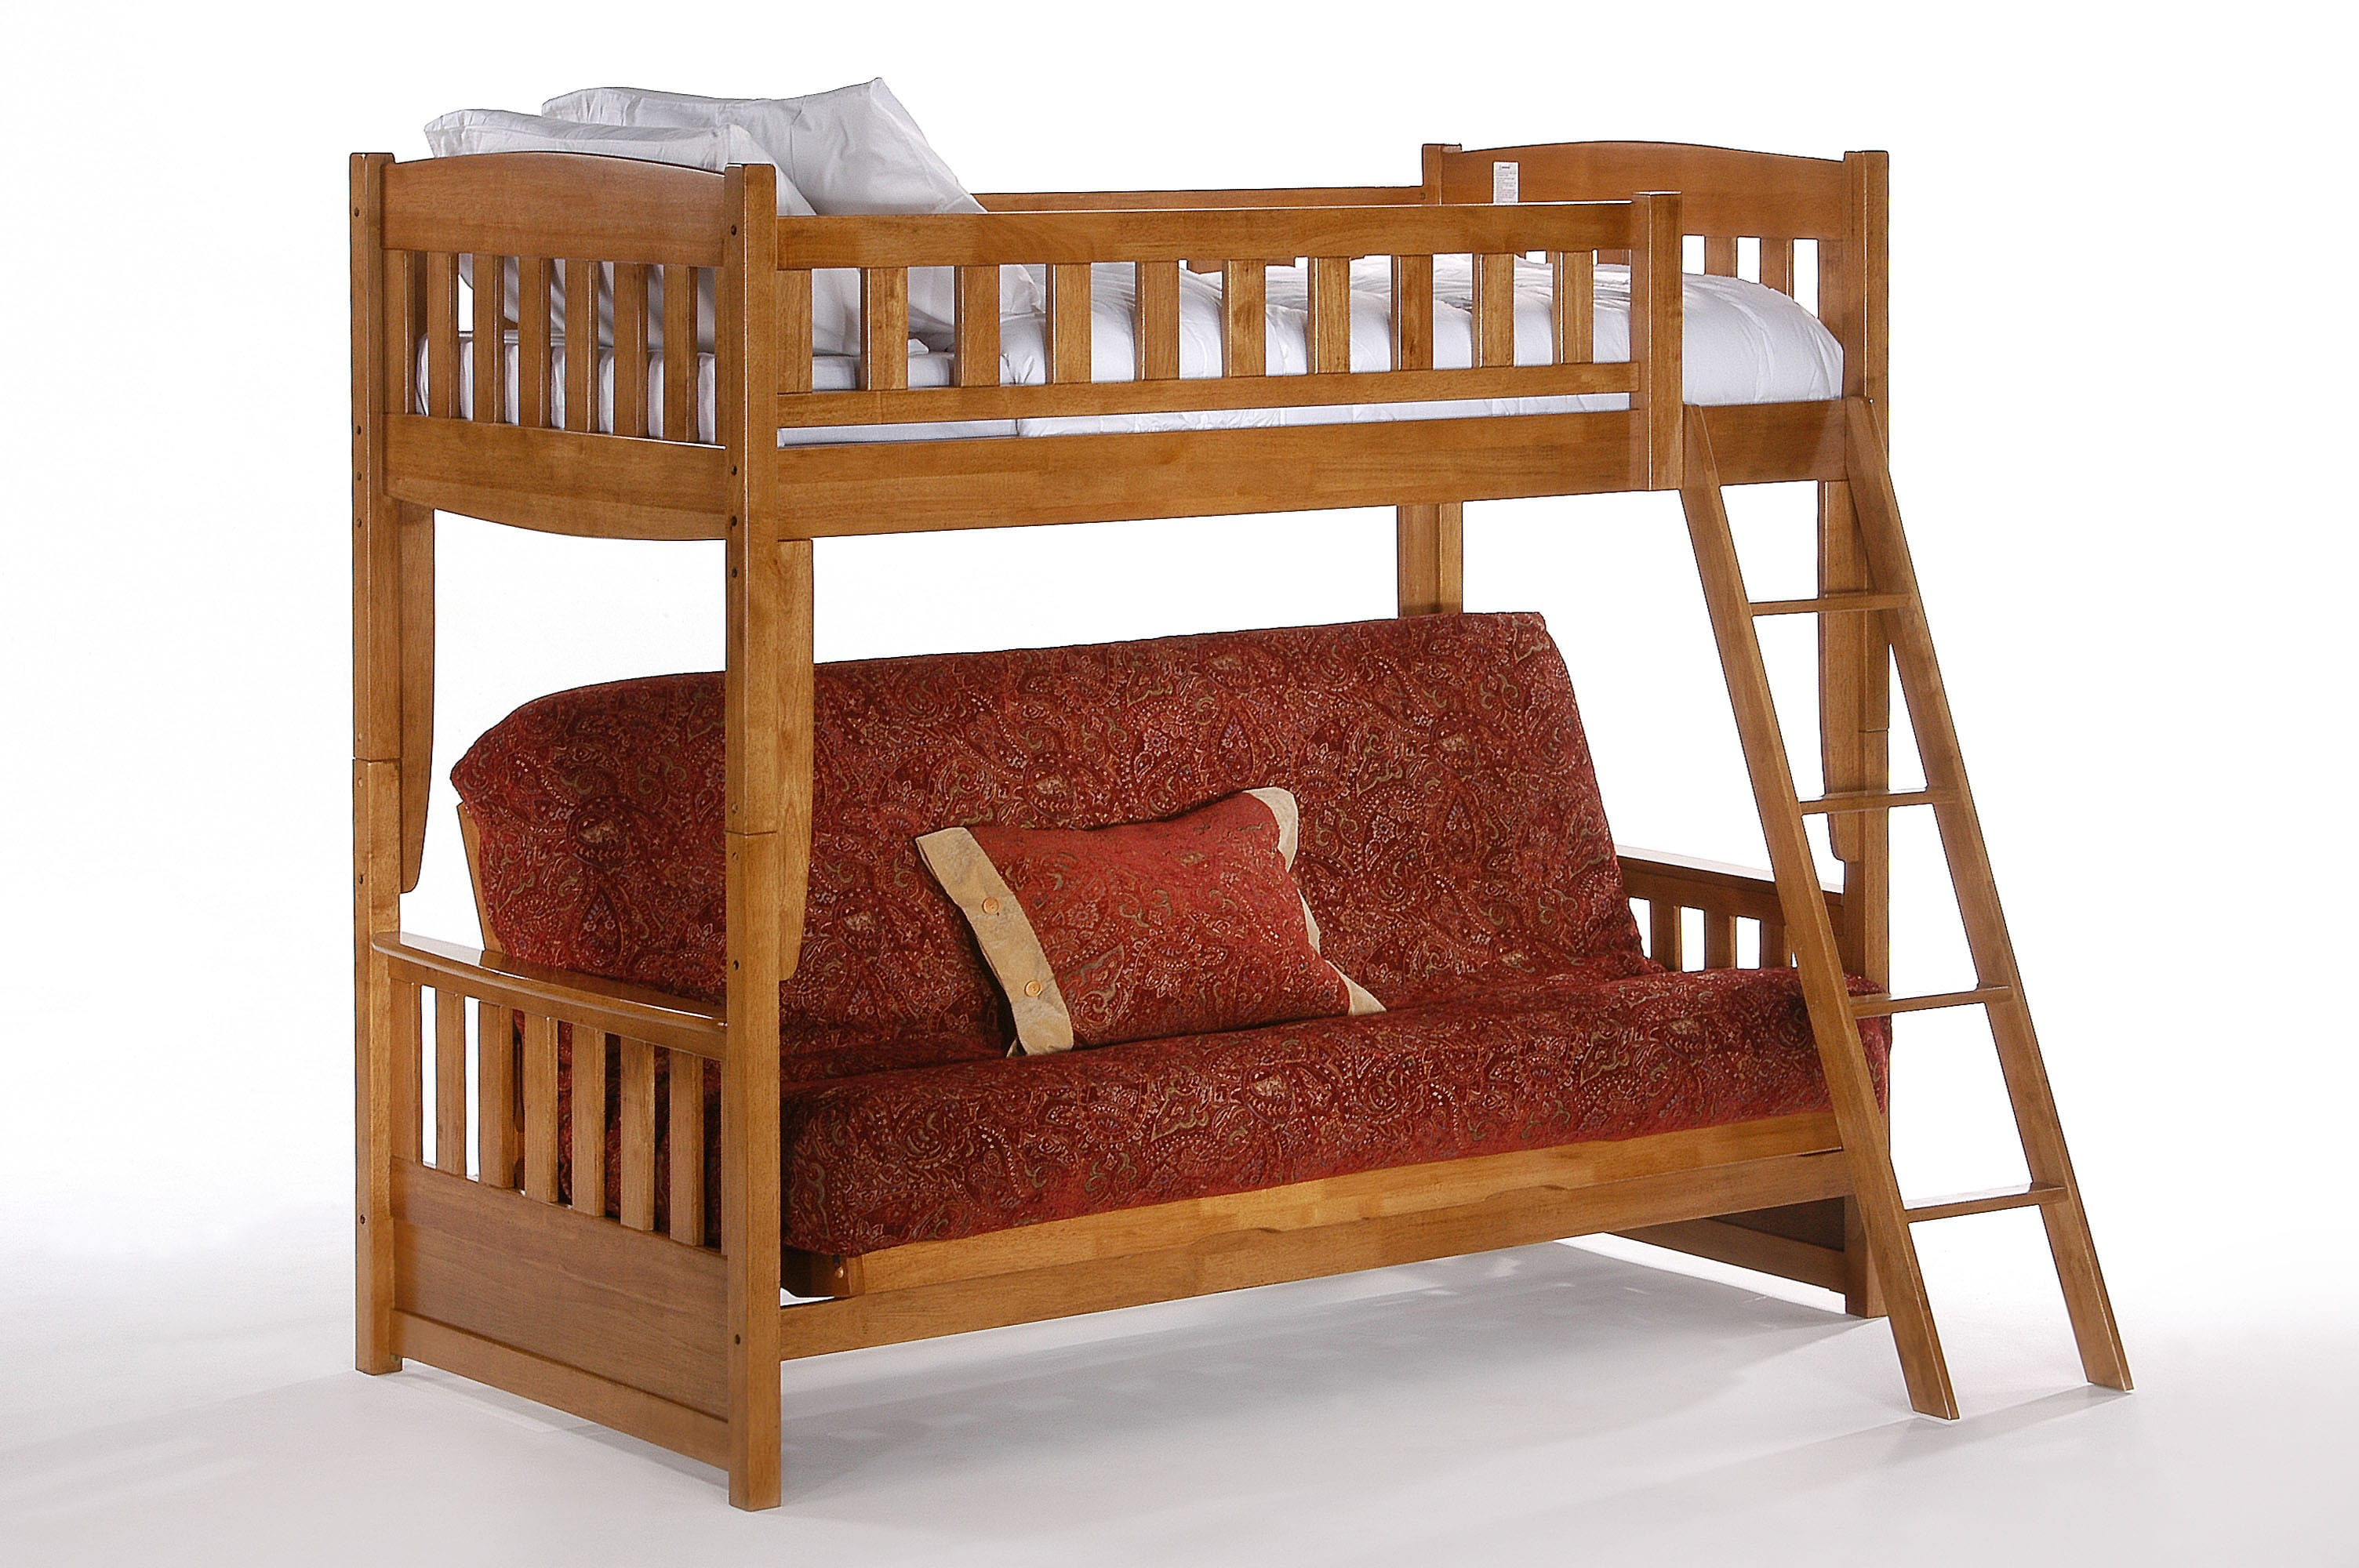 Cinnamon Futon Bunk Bed By Night Day Furniture